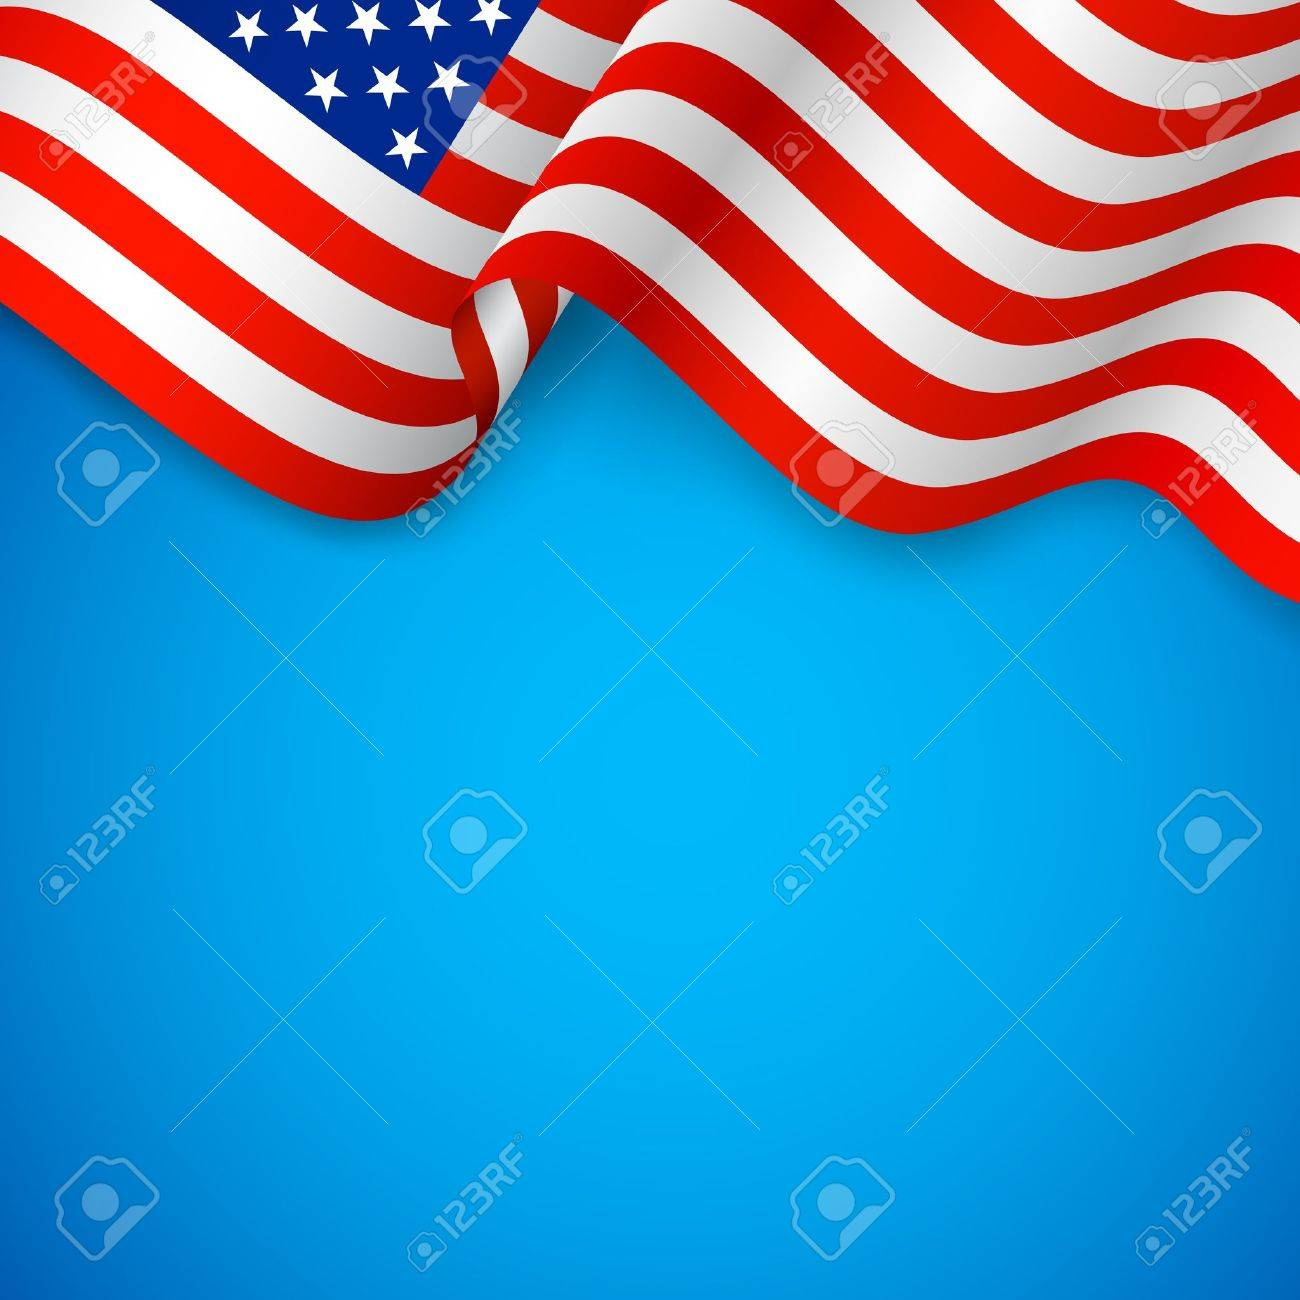 illustration of wavy American Flag for Independence Day Stock Vector - 20138034